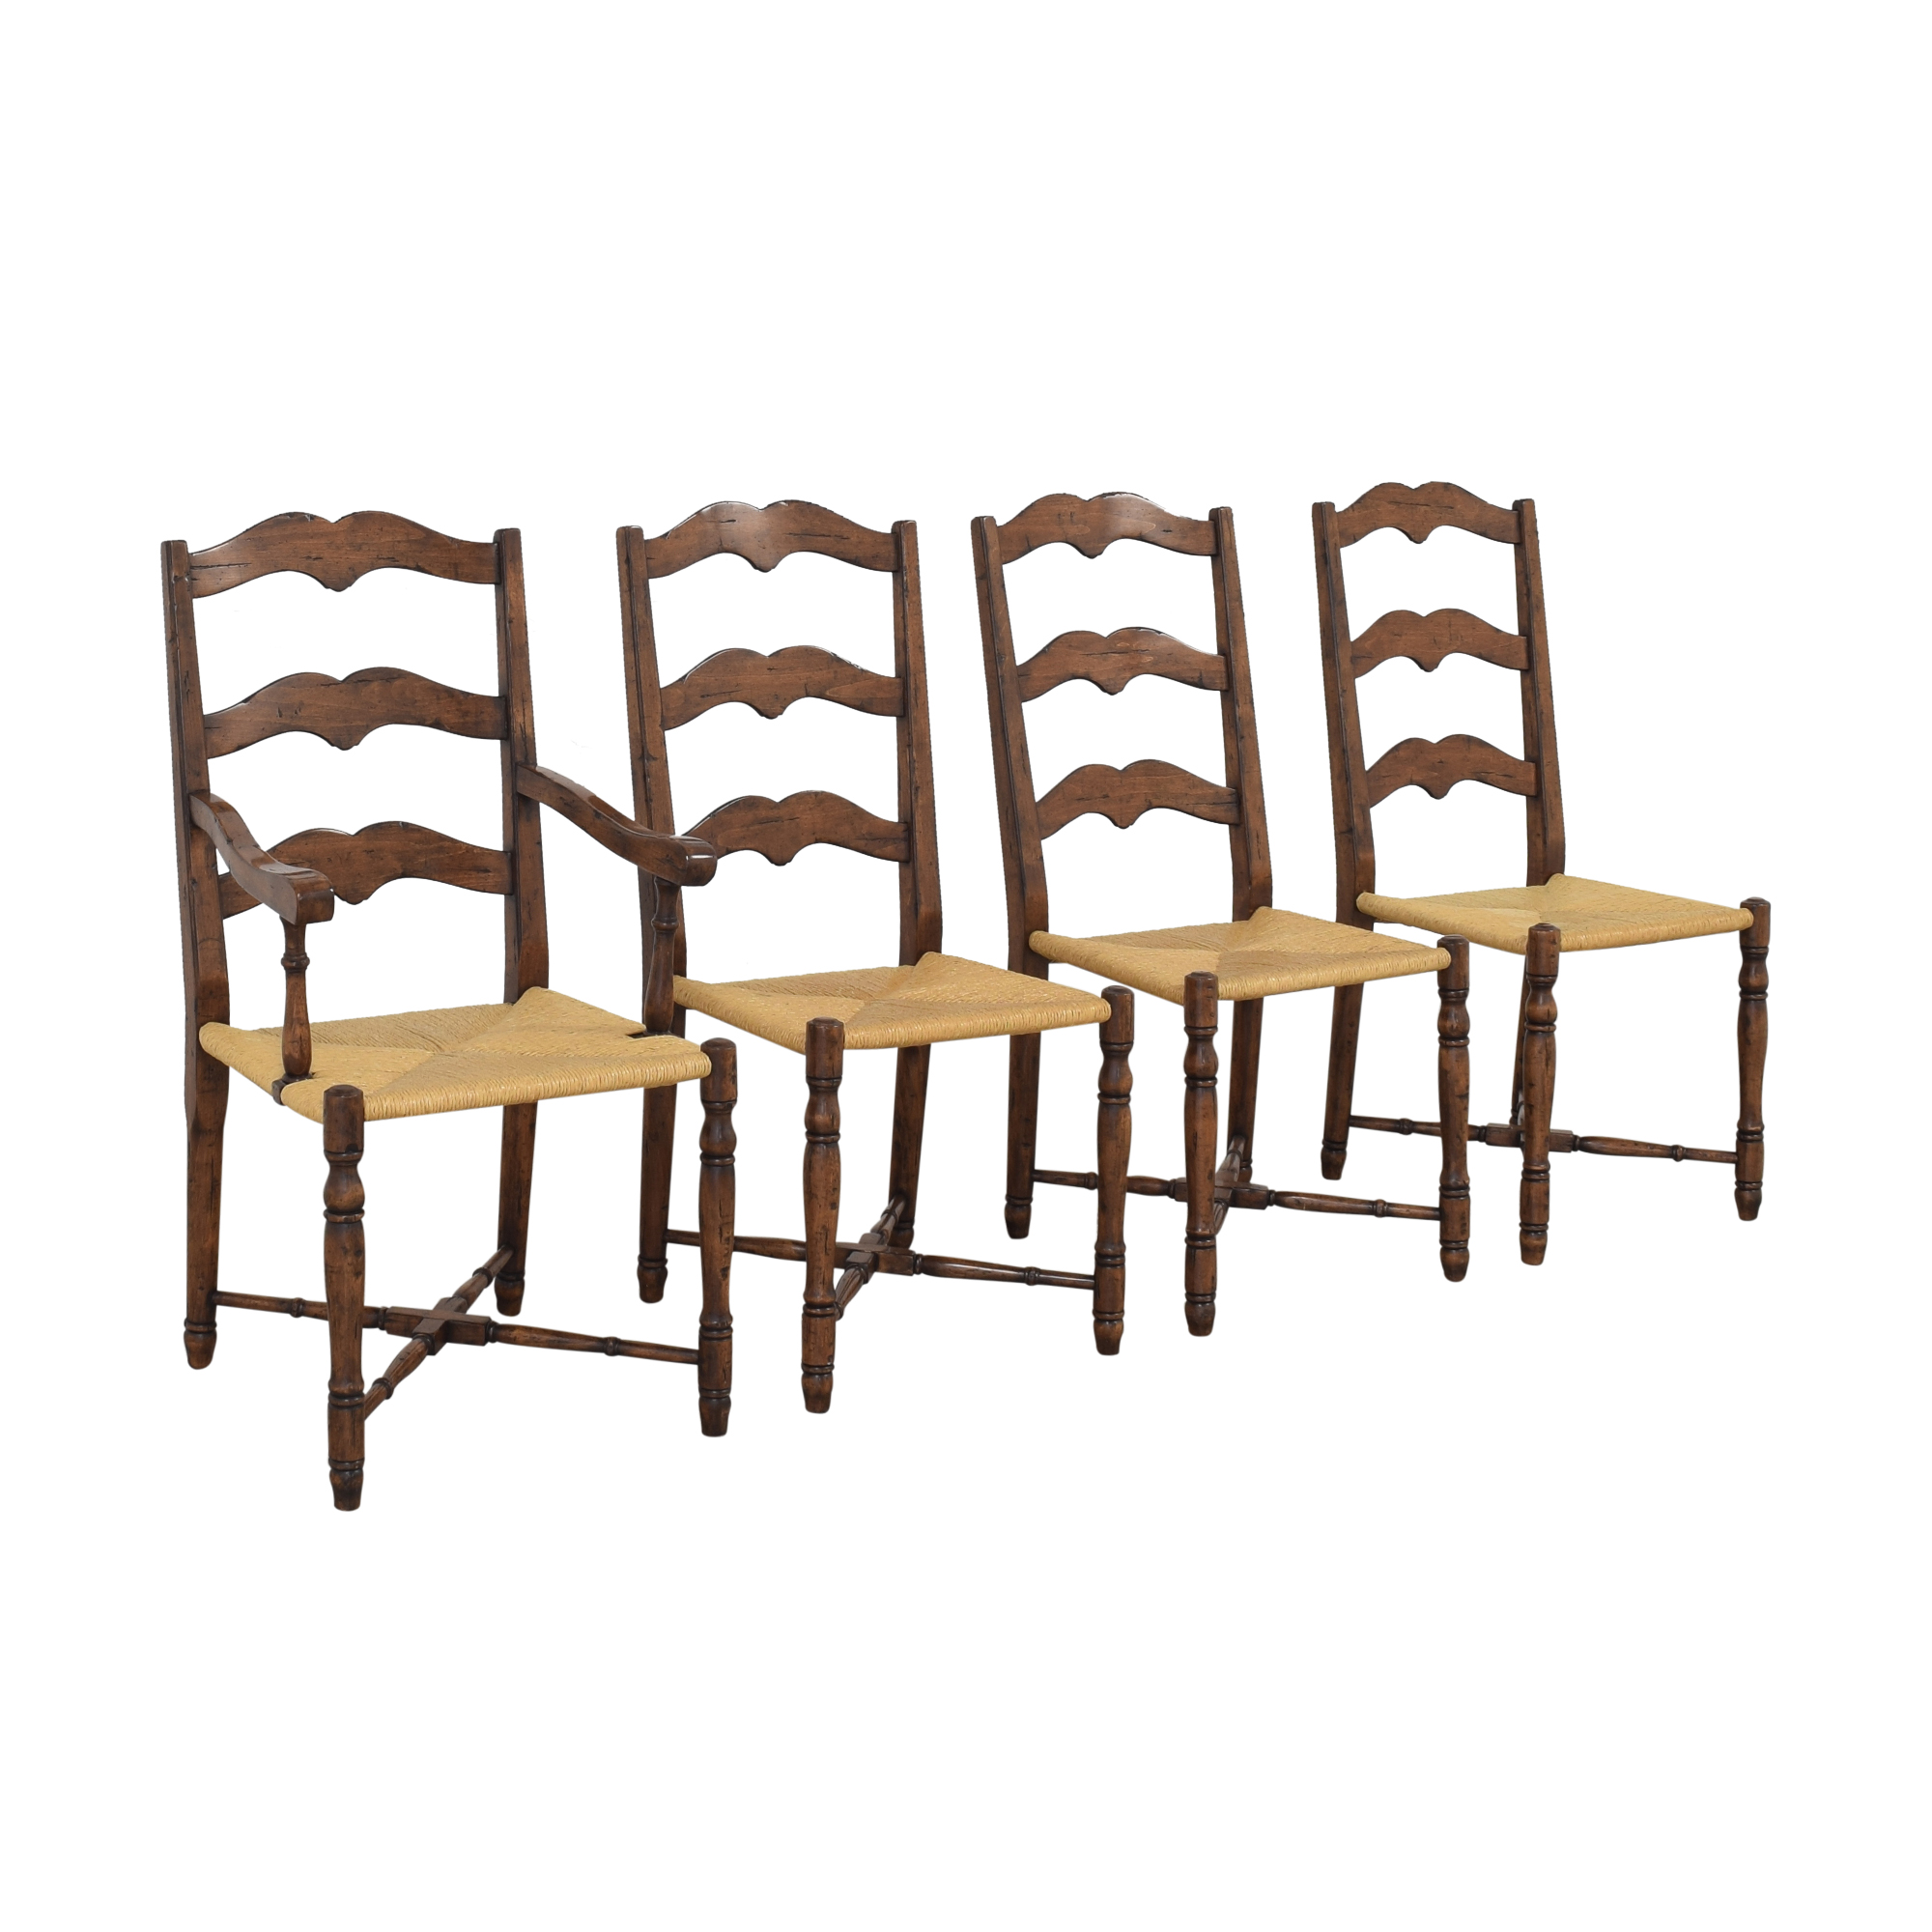 Pottery Barn Pottery Barn Lorraine Dining Chairs price